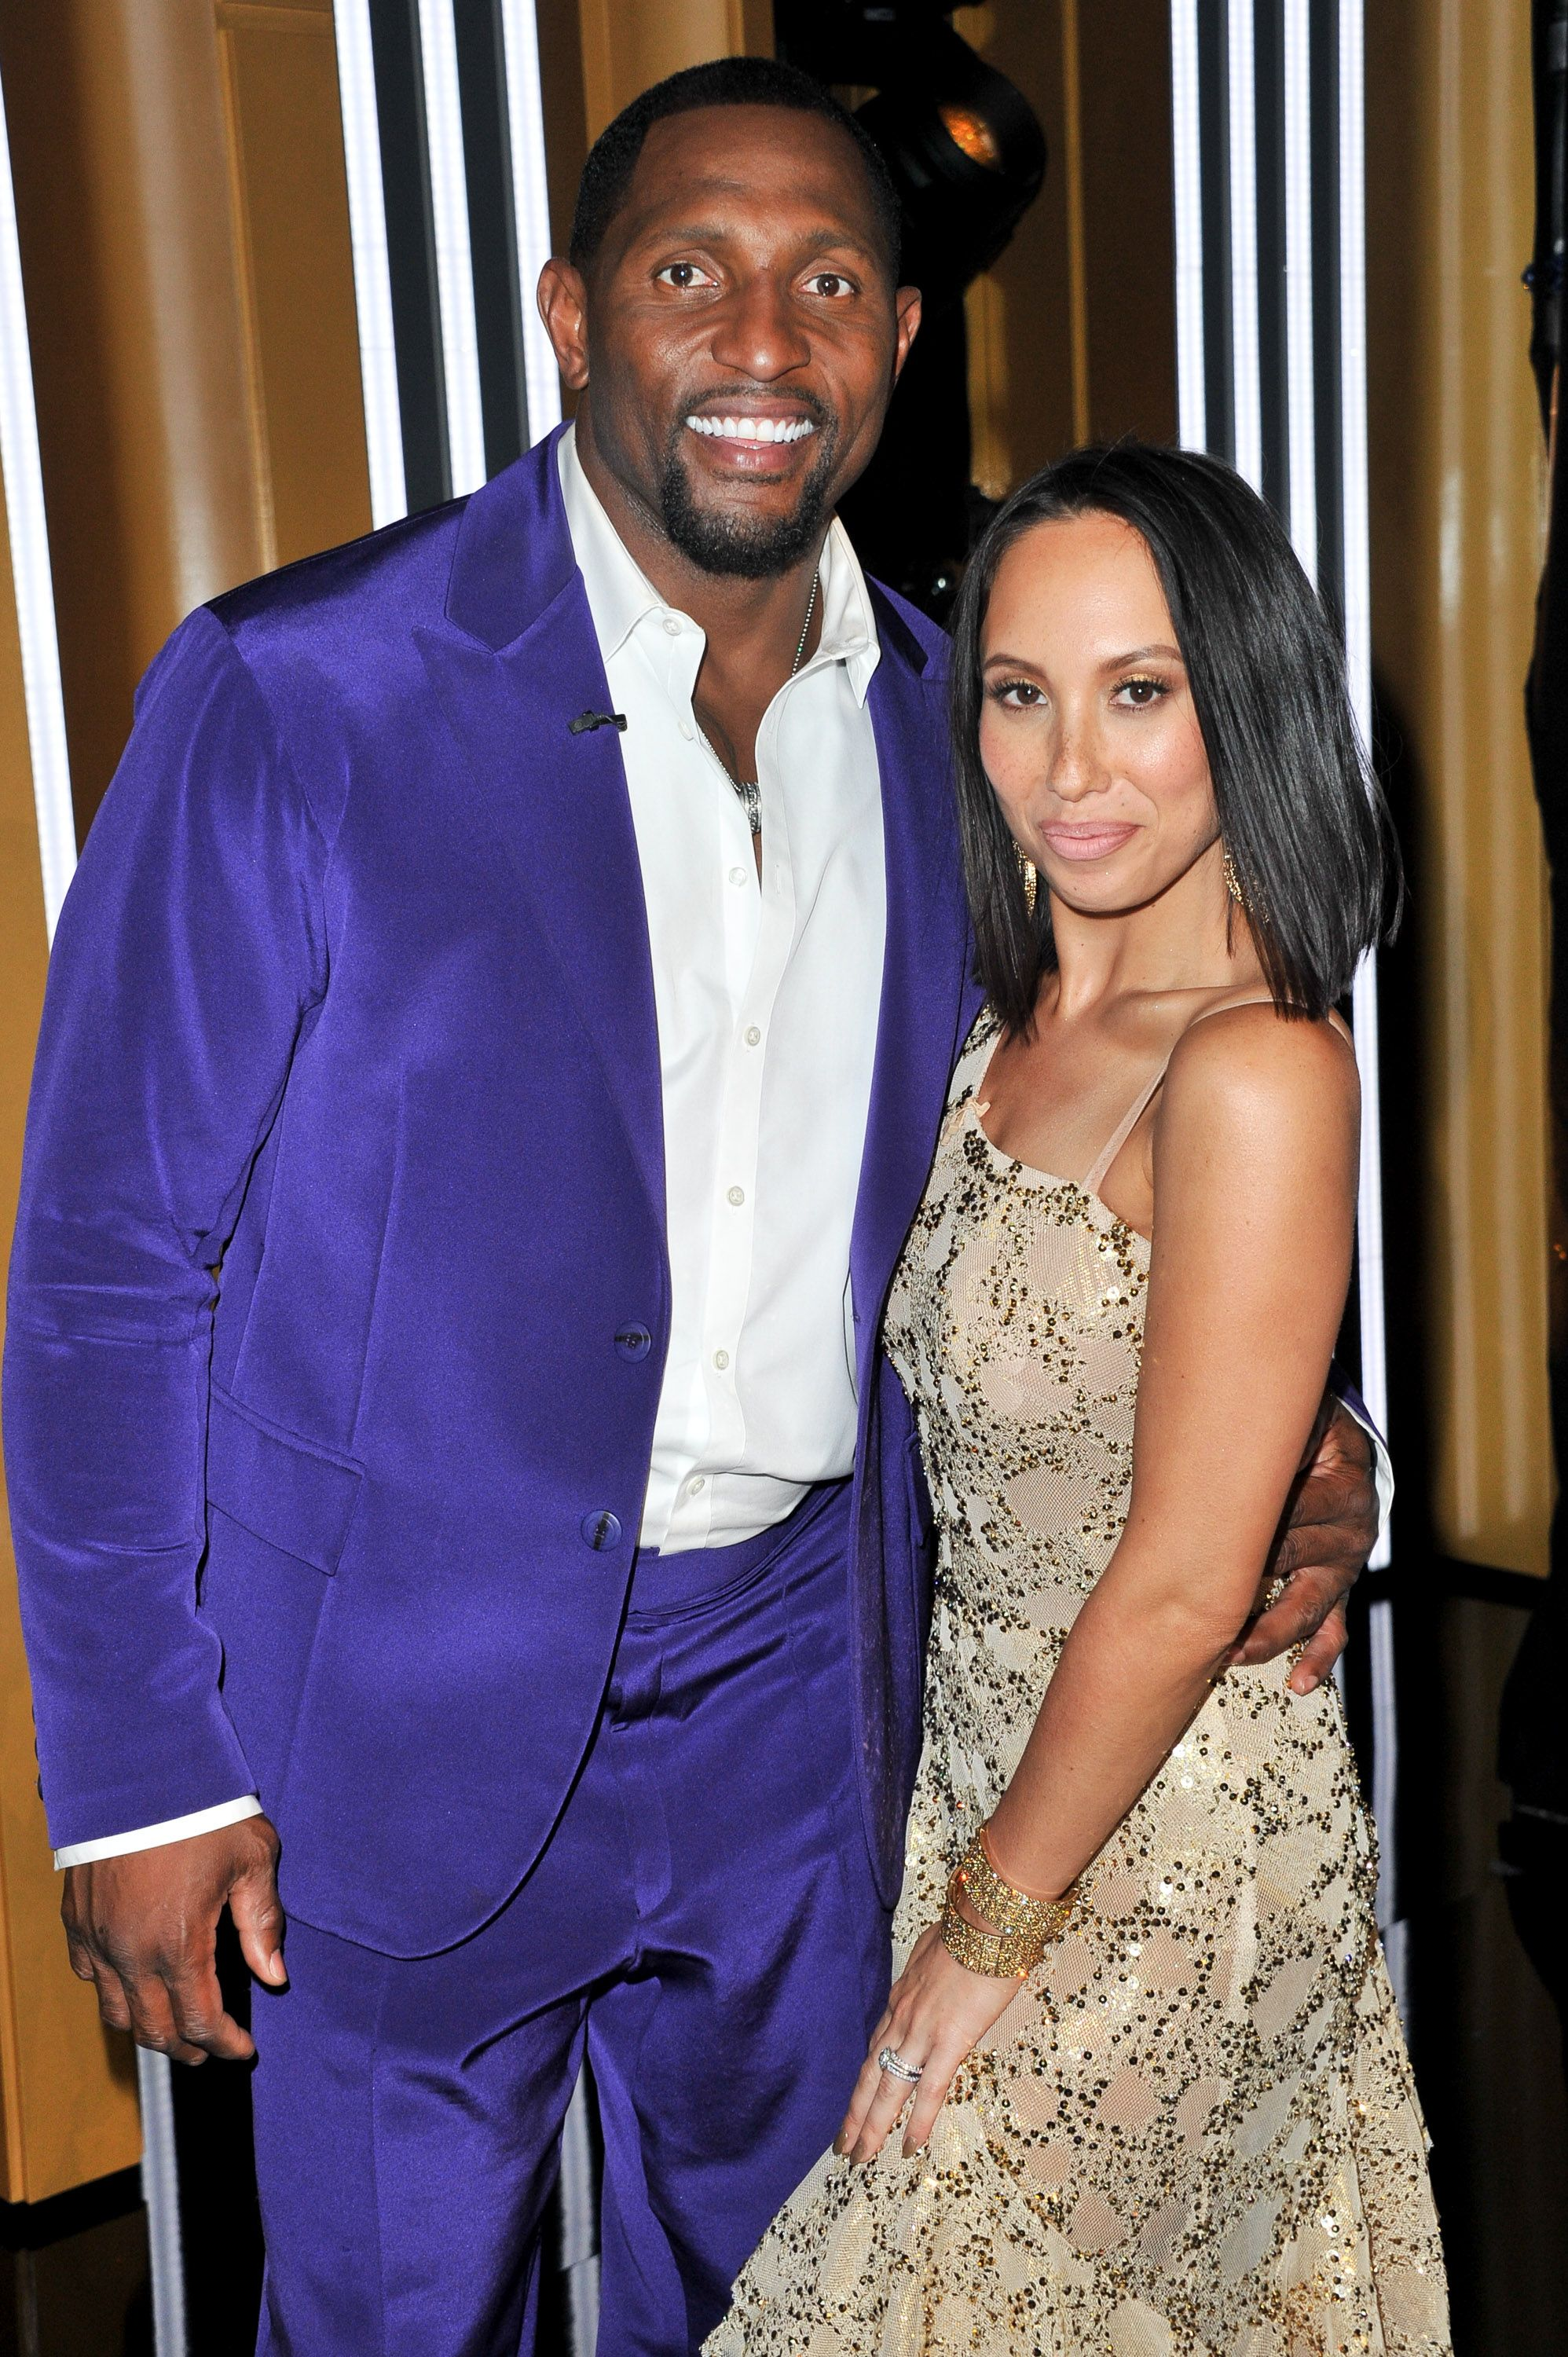 Ray Lewis Quits Dancing With The Stars Due To Foot Injury - Fame10